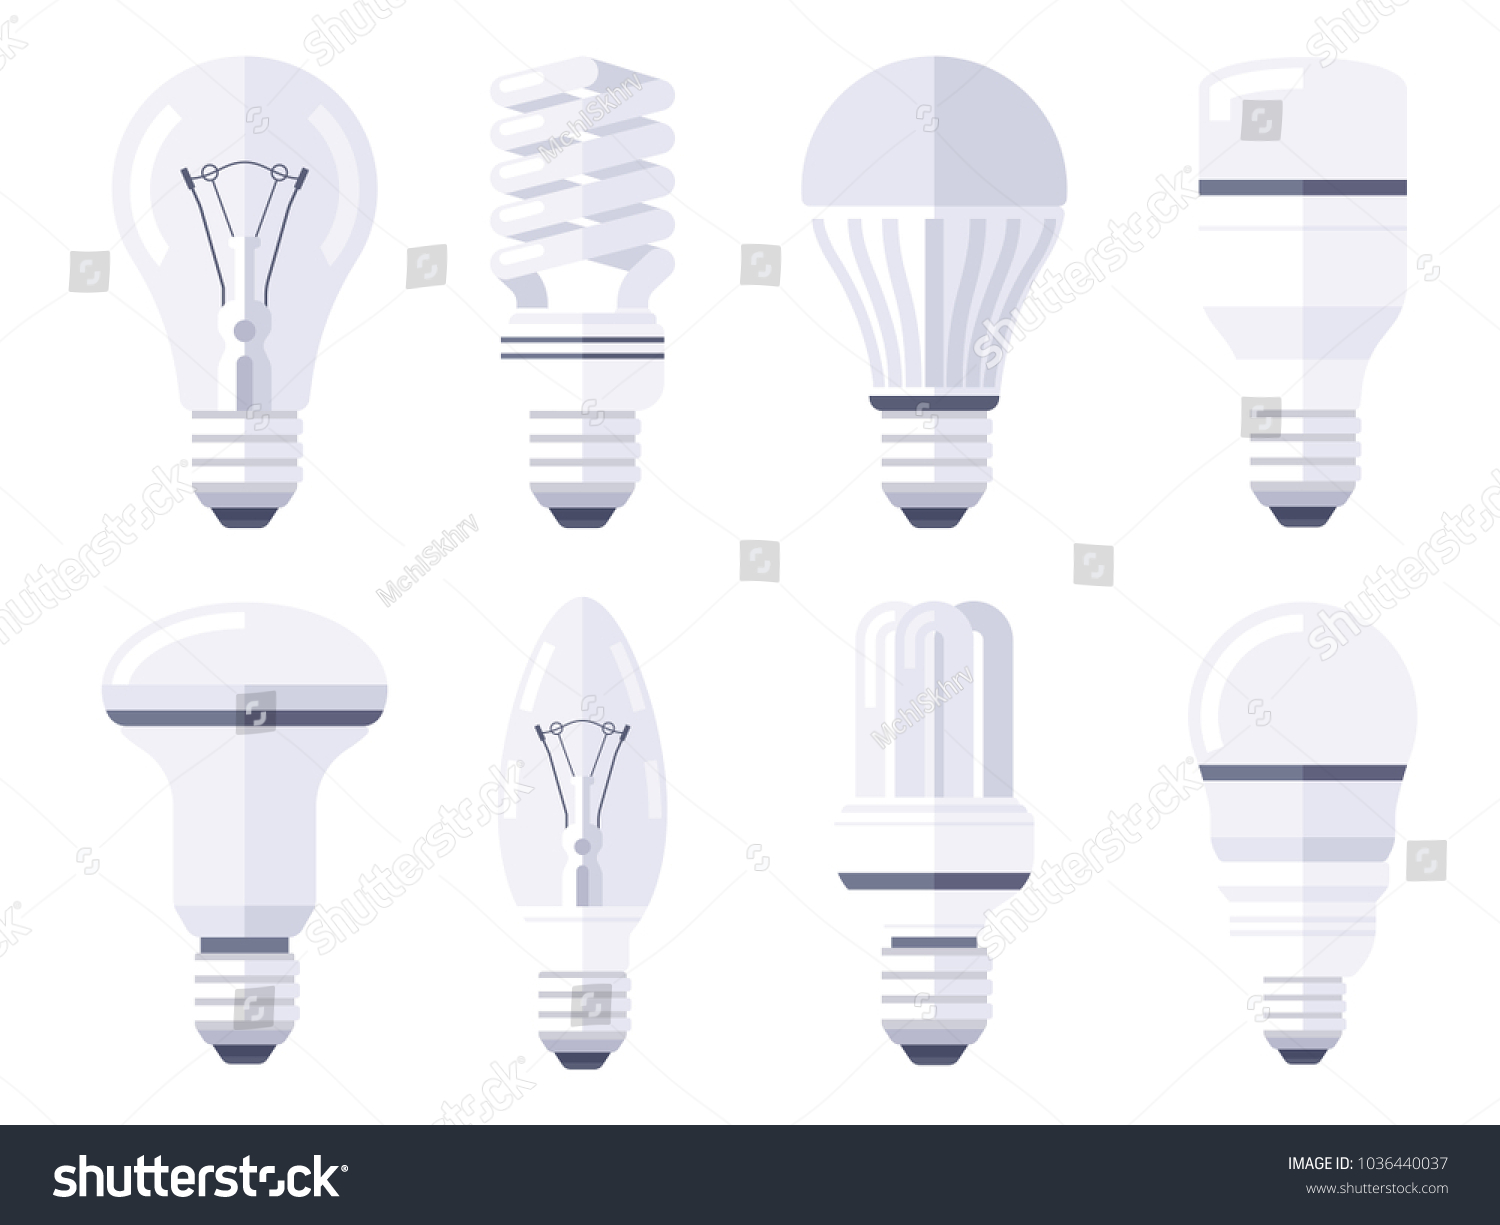 related lighting fanciful different guide suggestions light and types artistic led bulb luxurious bulbs similiar impressive ah caps keywords size